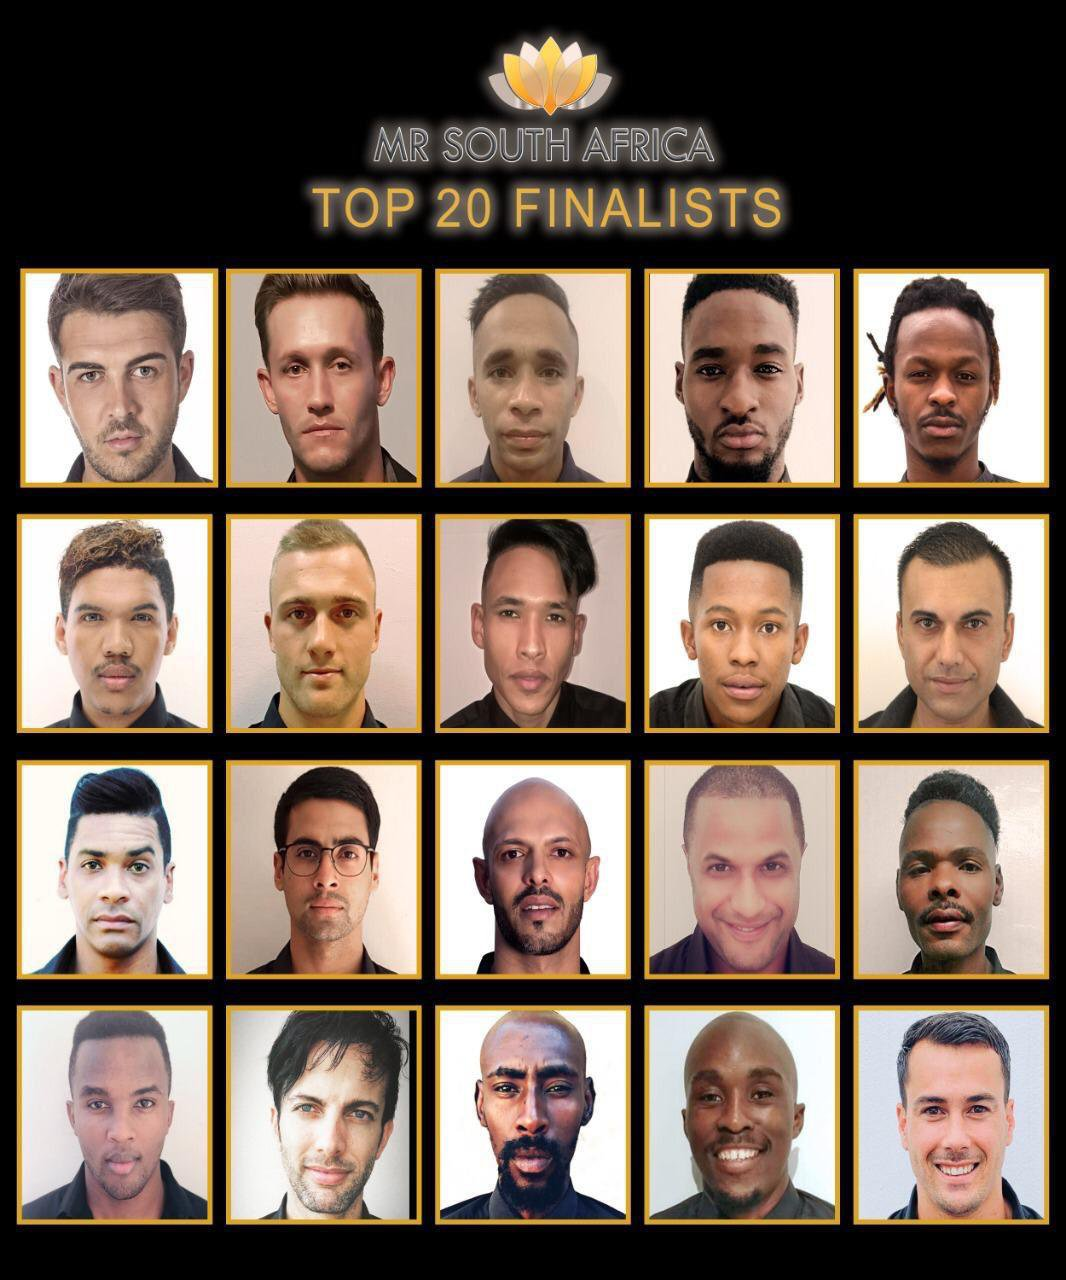 This is what social media thinks of Mr South Africa